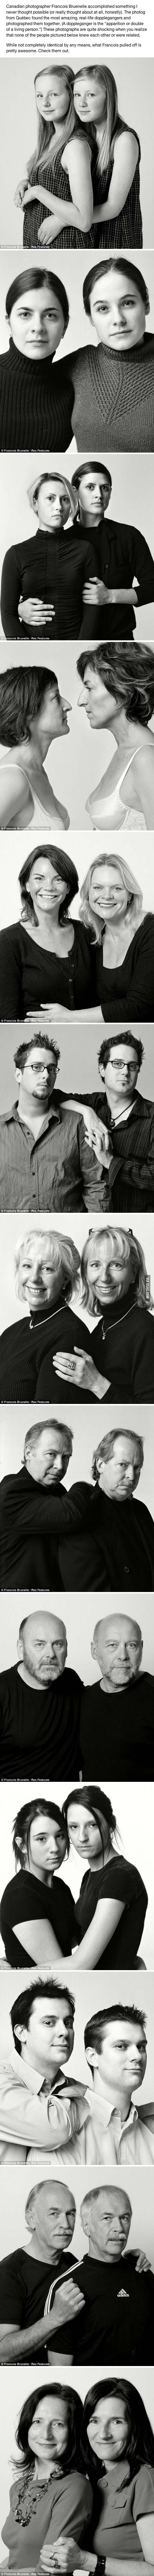 These 13 People Are Not Twins What's Even More Unbelievable… They've Never